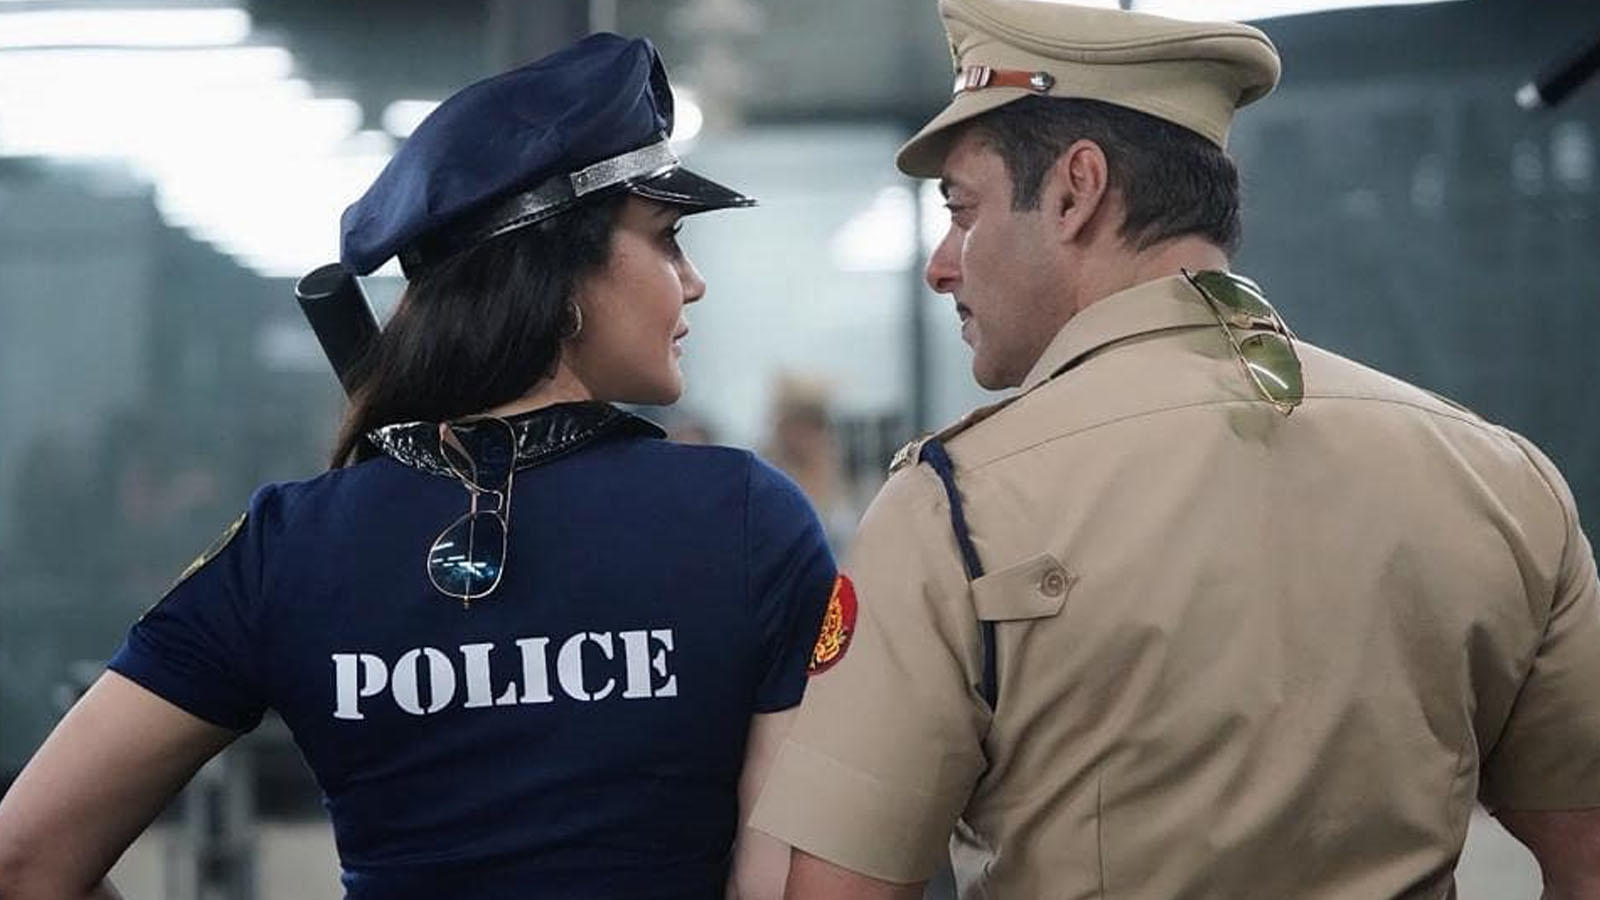 Photo of Preity Zinta & Salman Khan Aka Dabanng 3's Chulbul Pandey Both Have A Surprise For You This Halloween